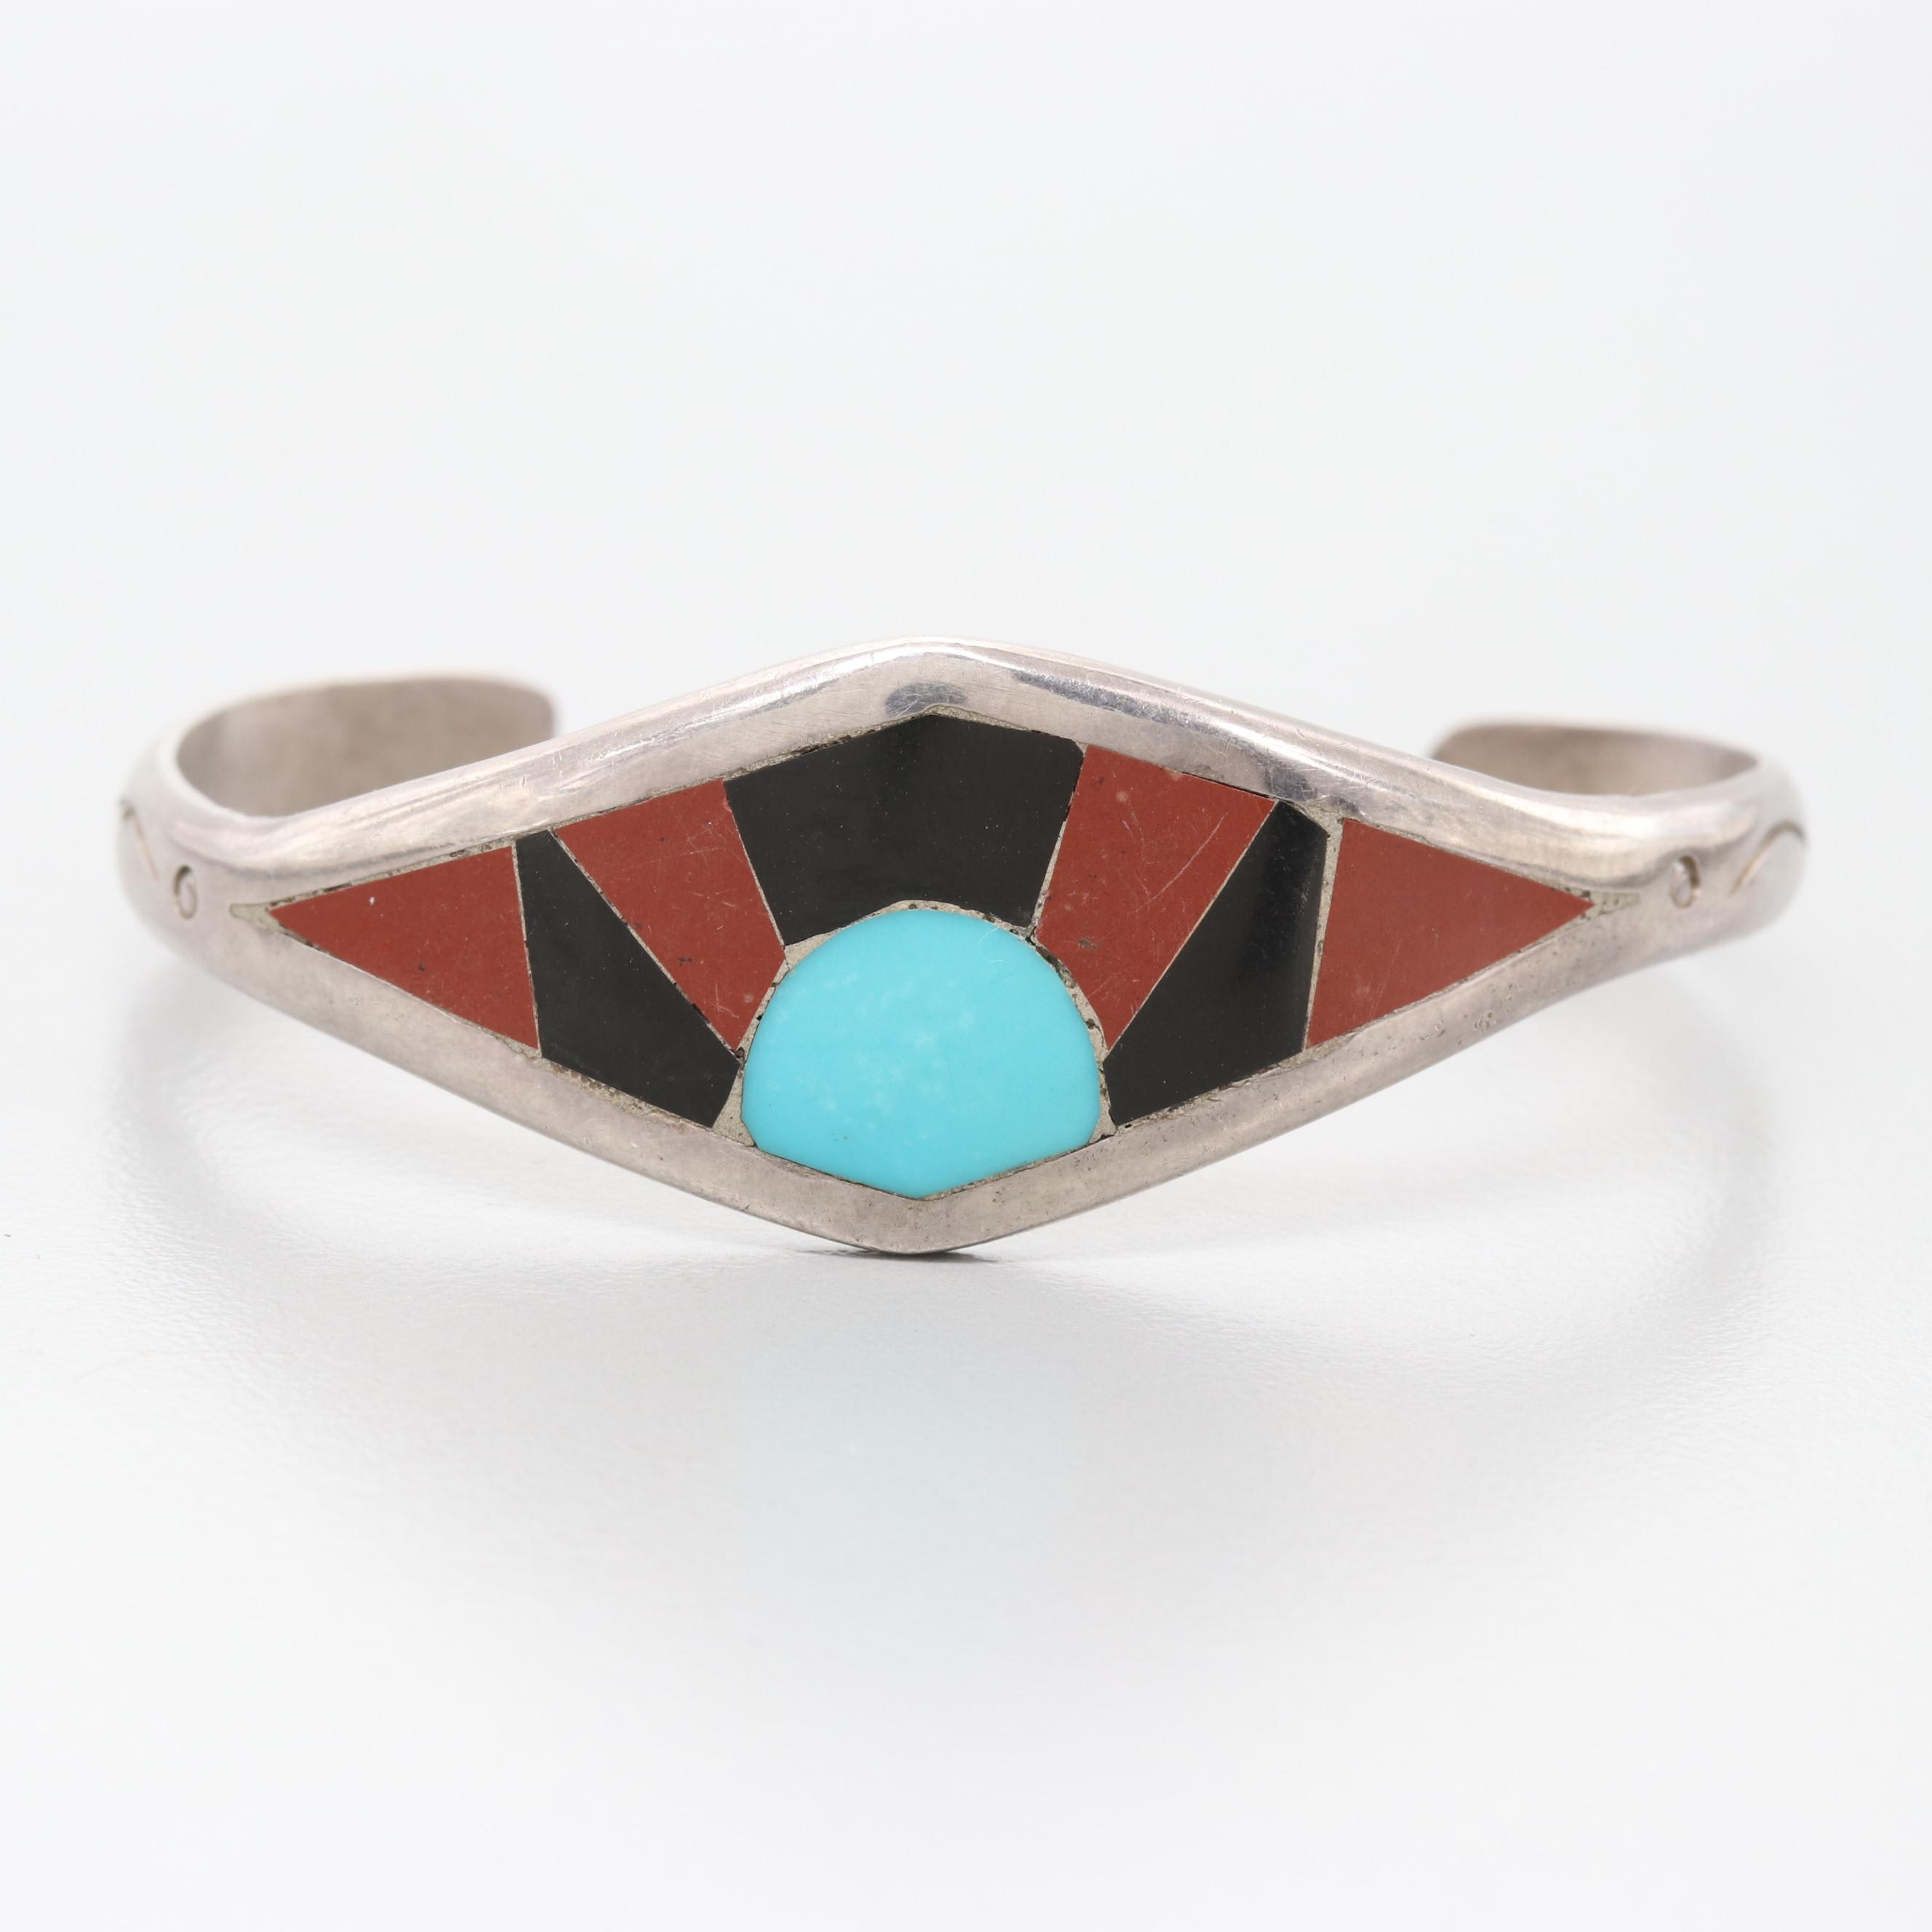 David Sandoval Navajo Diné Sterling Silver Jasper and Gemstone Cuff Bracelet